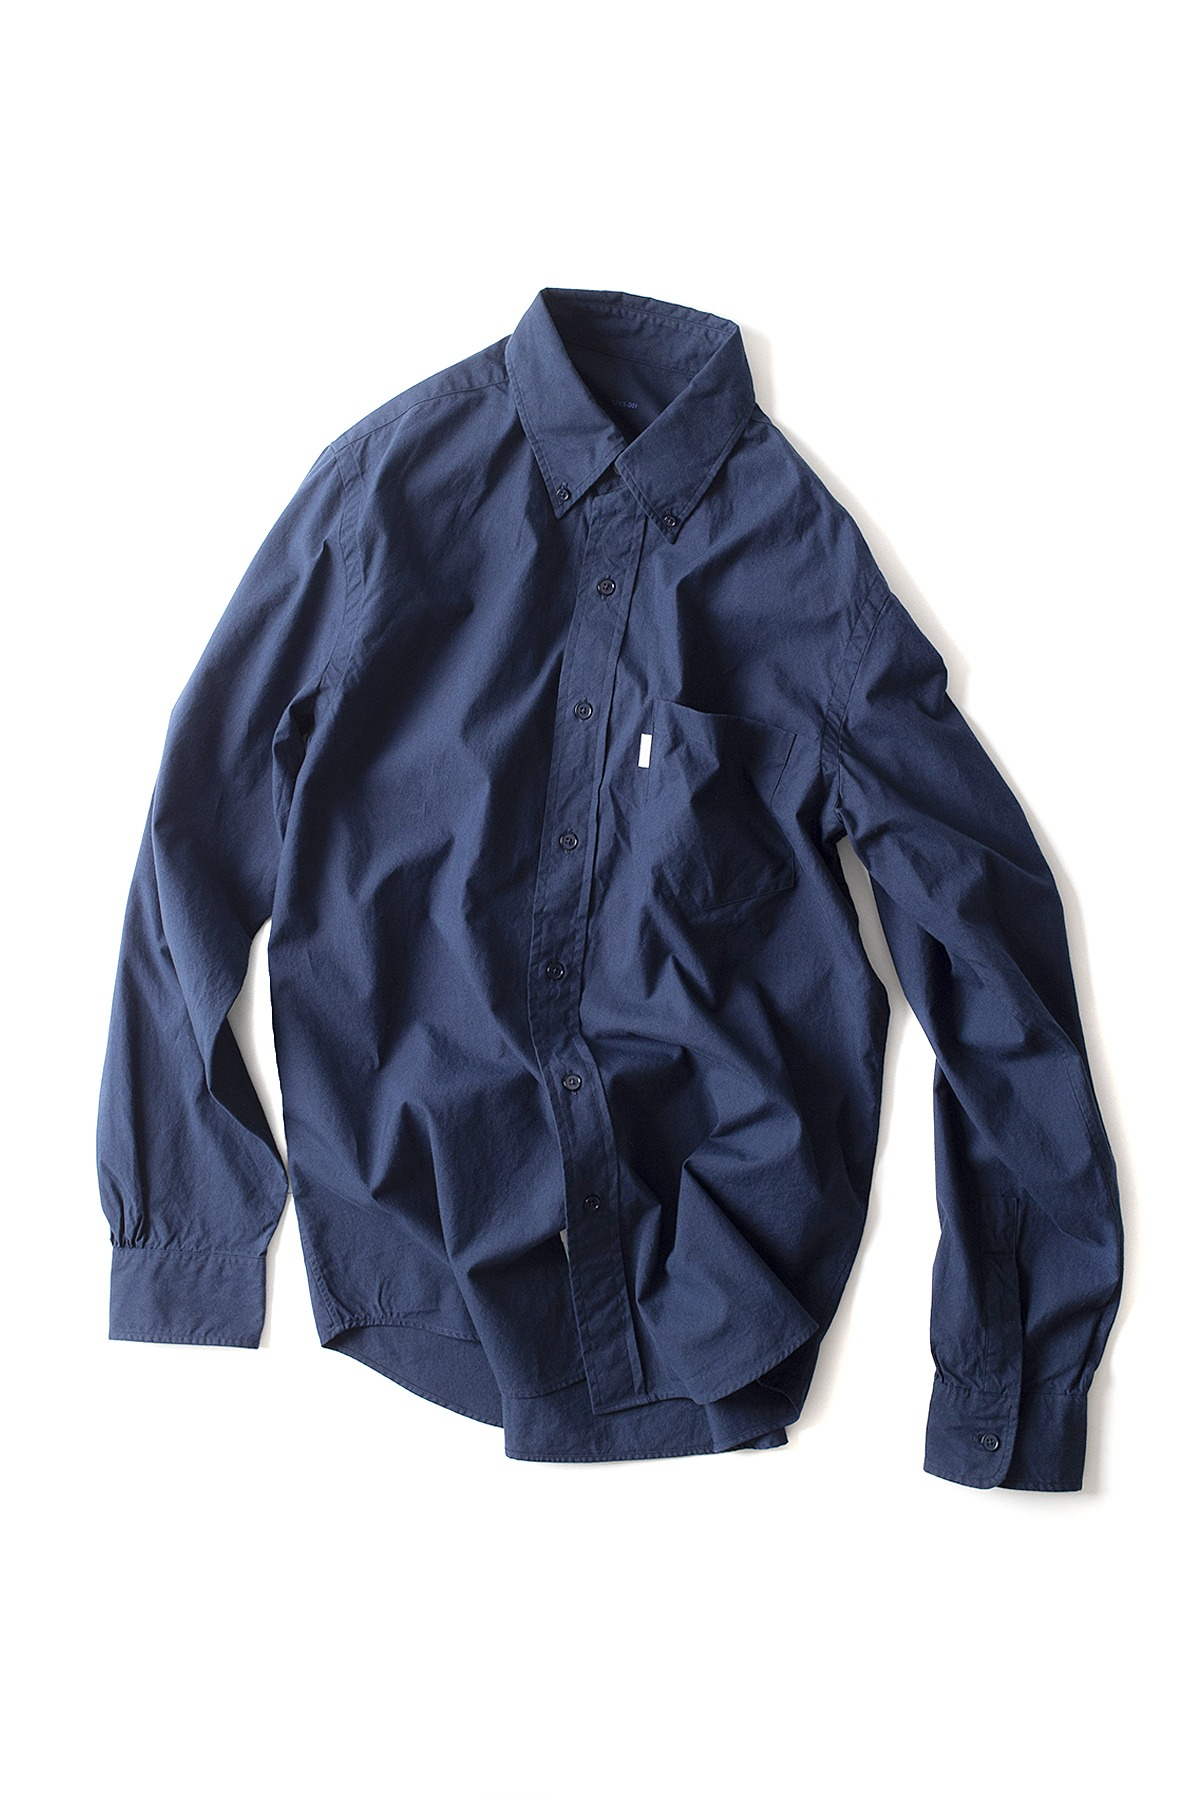 S H : Button Down Shirt (Navy)